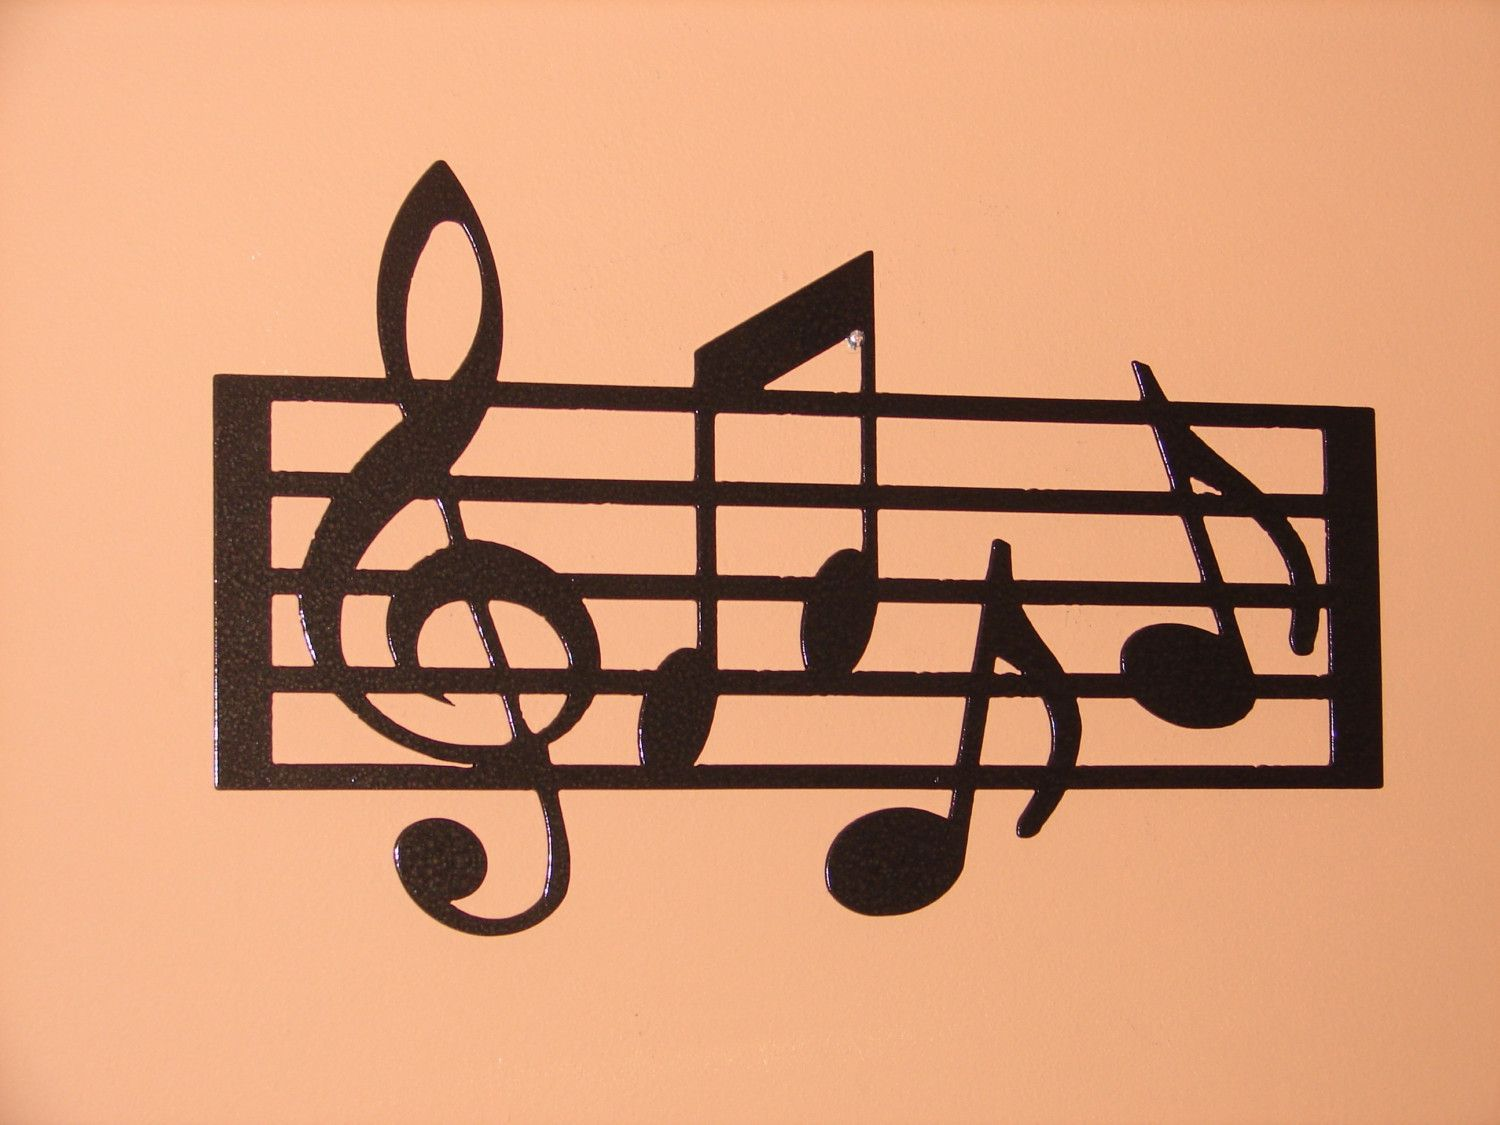 Musical Wall Art Metal Metal Wall Art Home Decor Music Notes Musical 18 5in Long